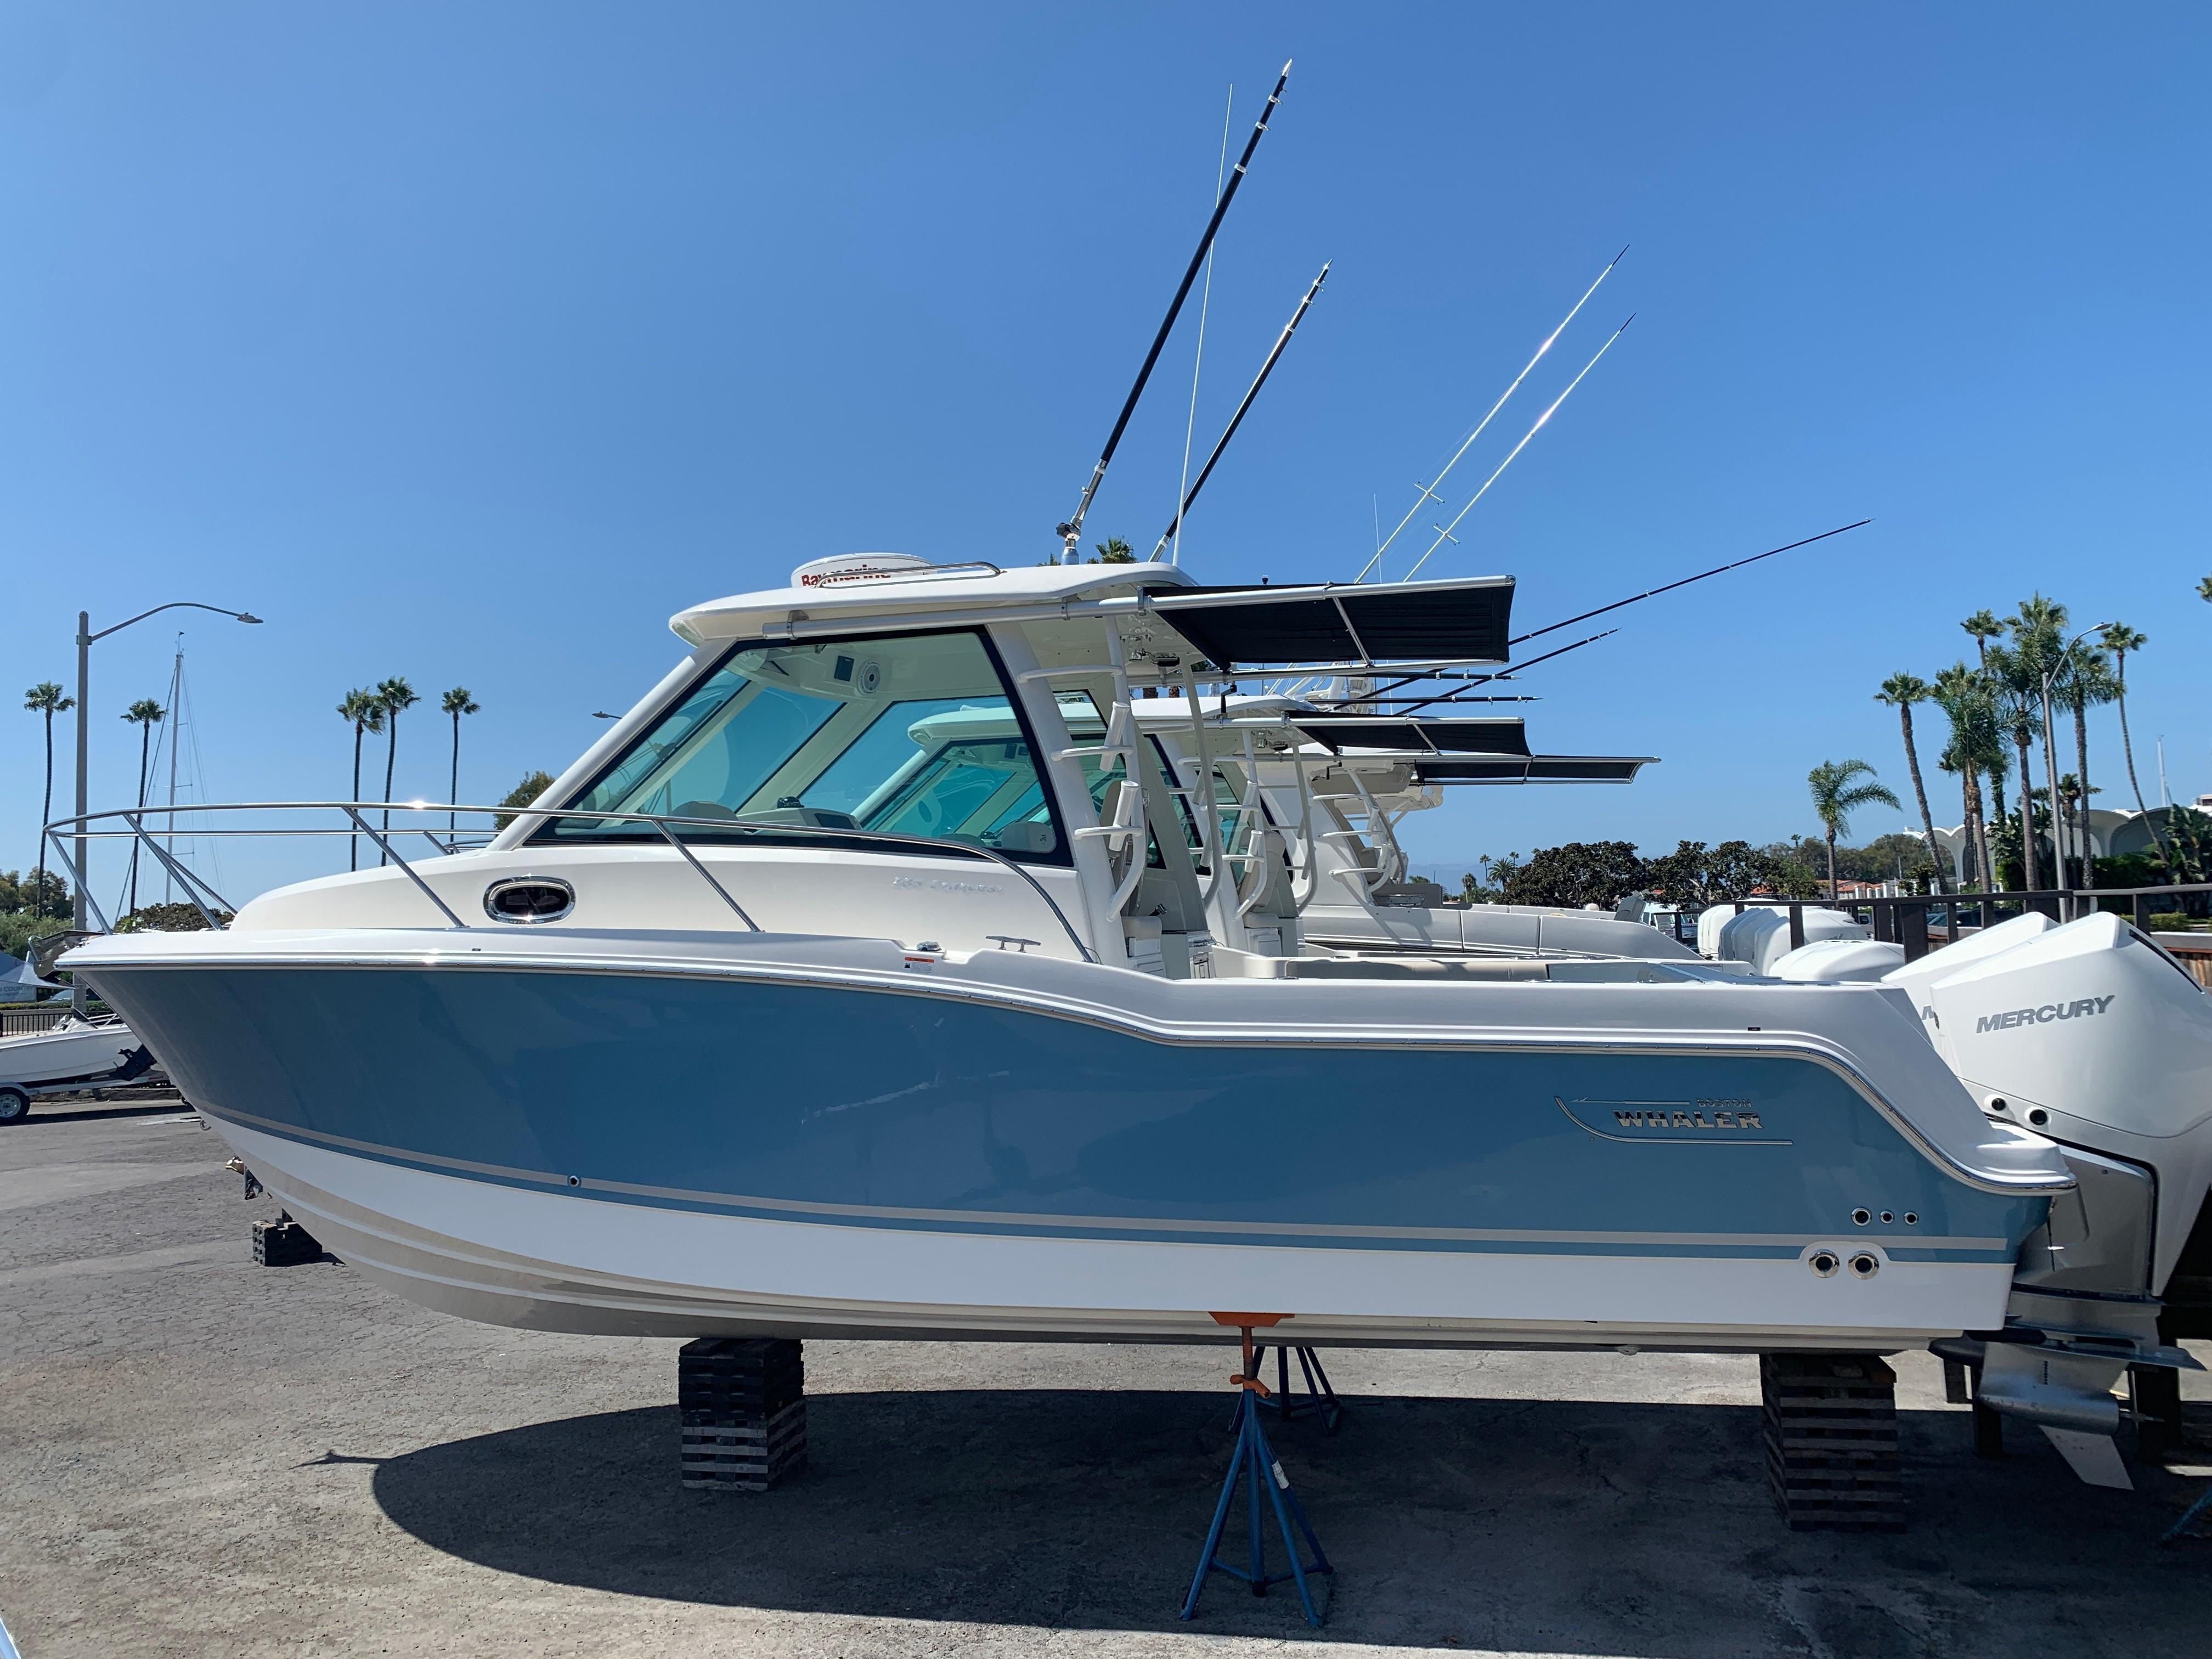 2020 Boston Whaler 285 Conquest #BW2725E inventory image at Sun Country Coastal in Newport Beach